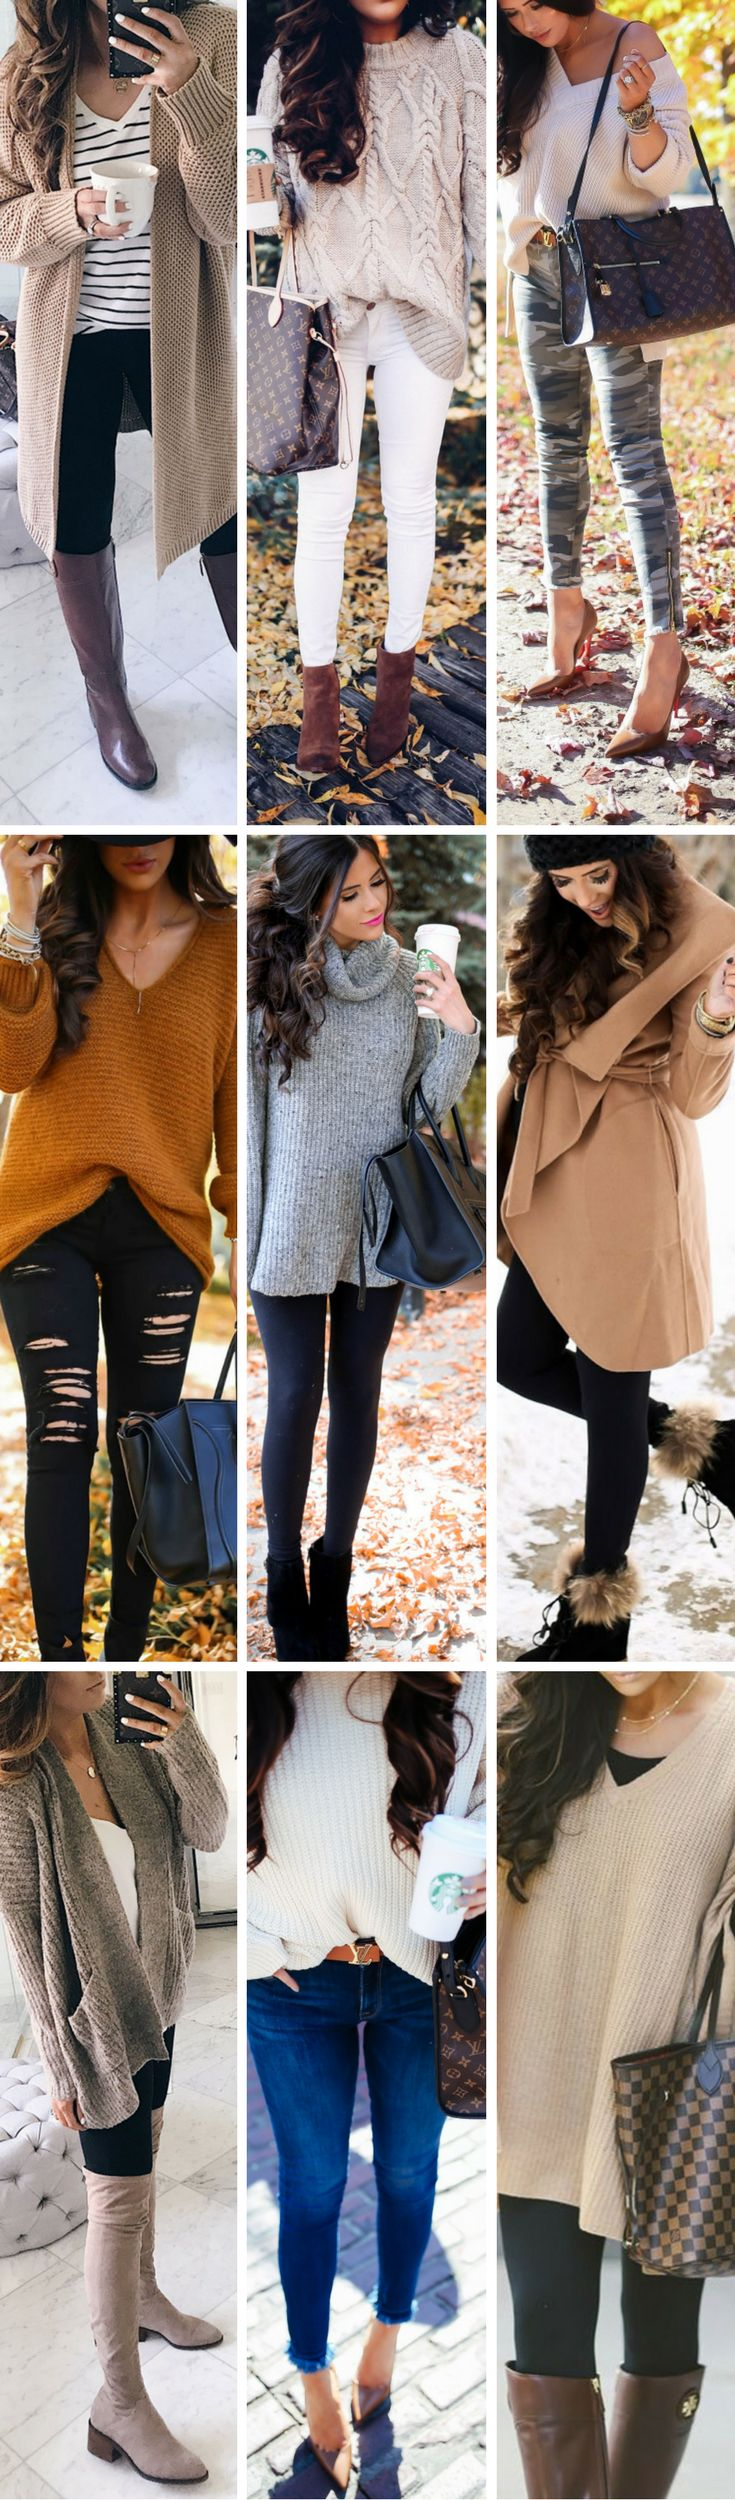 My favorite looks for Thanksgiving. The Sweetest Thing, Emily Gemma. Fashion Blogger, Fashion Trends, Fashion Outfits, Casual style, camel coat, grey sweater, distressed jeans, louis vuitton handbag, suede boots, striped tee. #fashionblogger #thanksgivingoutfits #falloutfits #winteroutfits #style #camelcoa